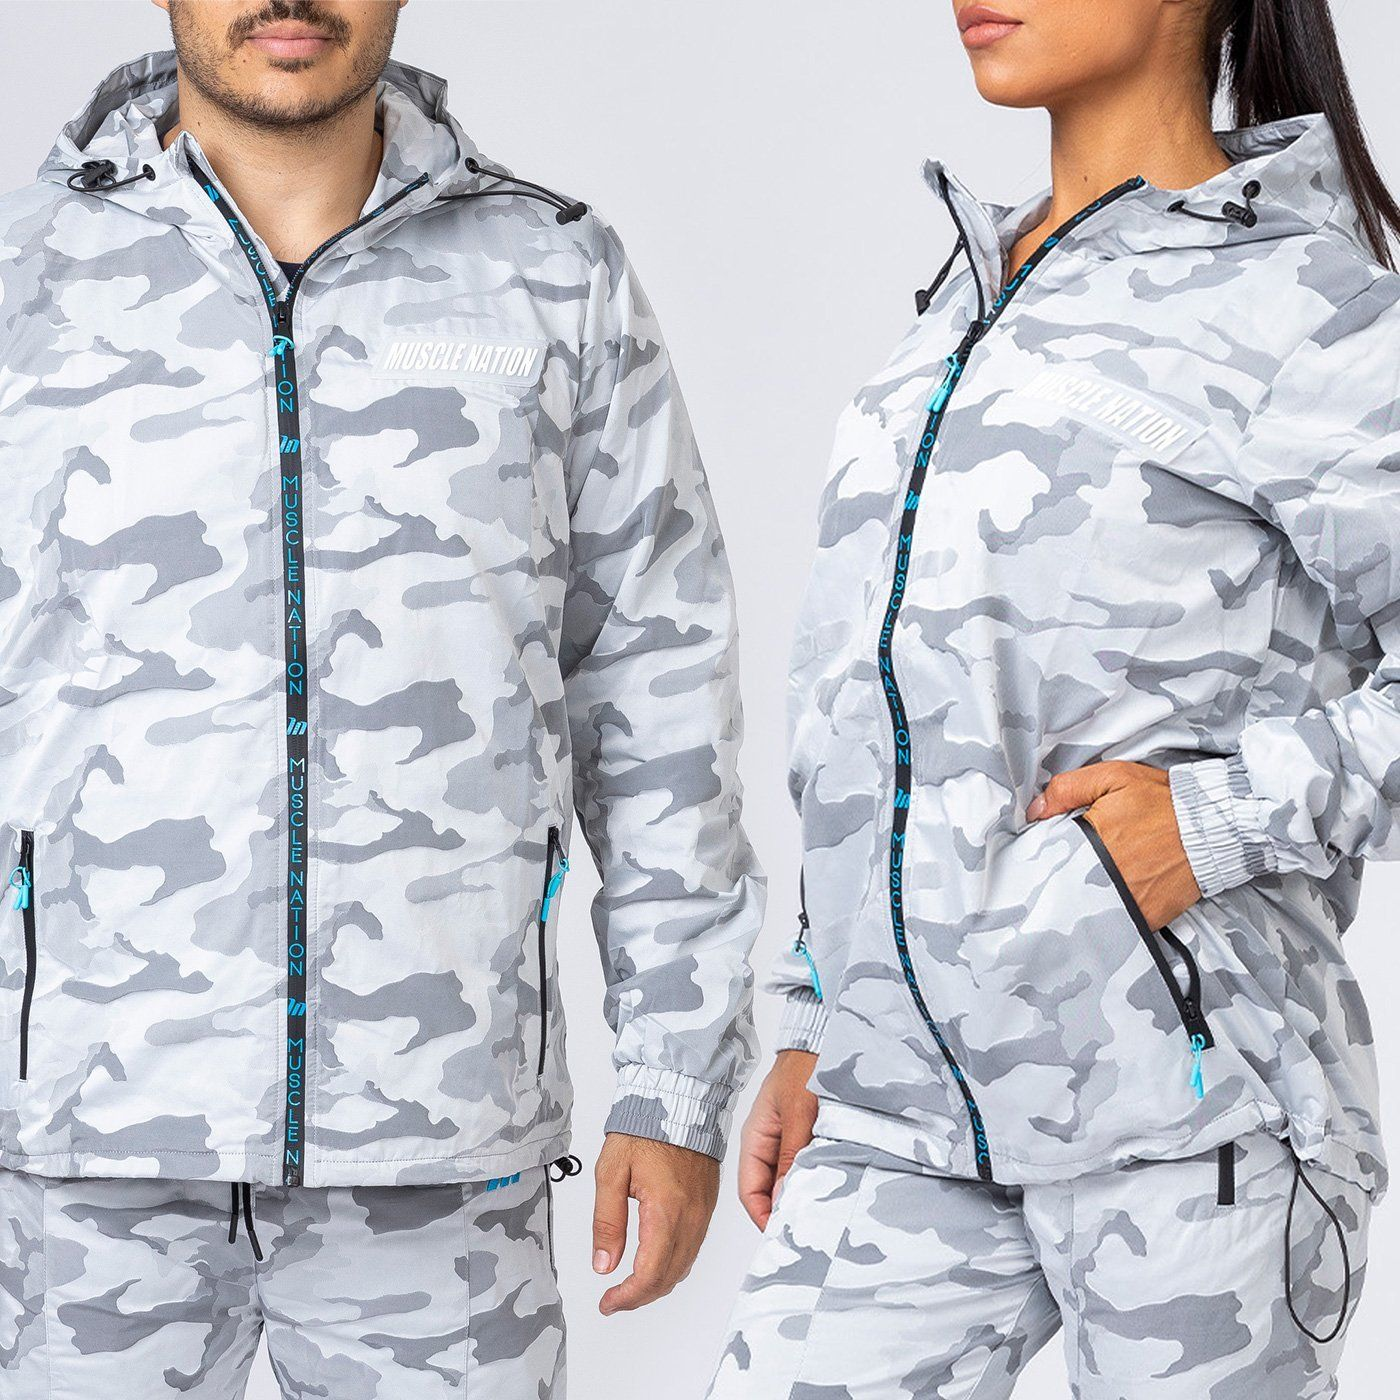 Muscle Nation Unisex Jacket - Snow Camo